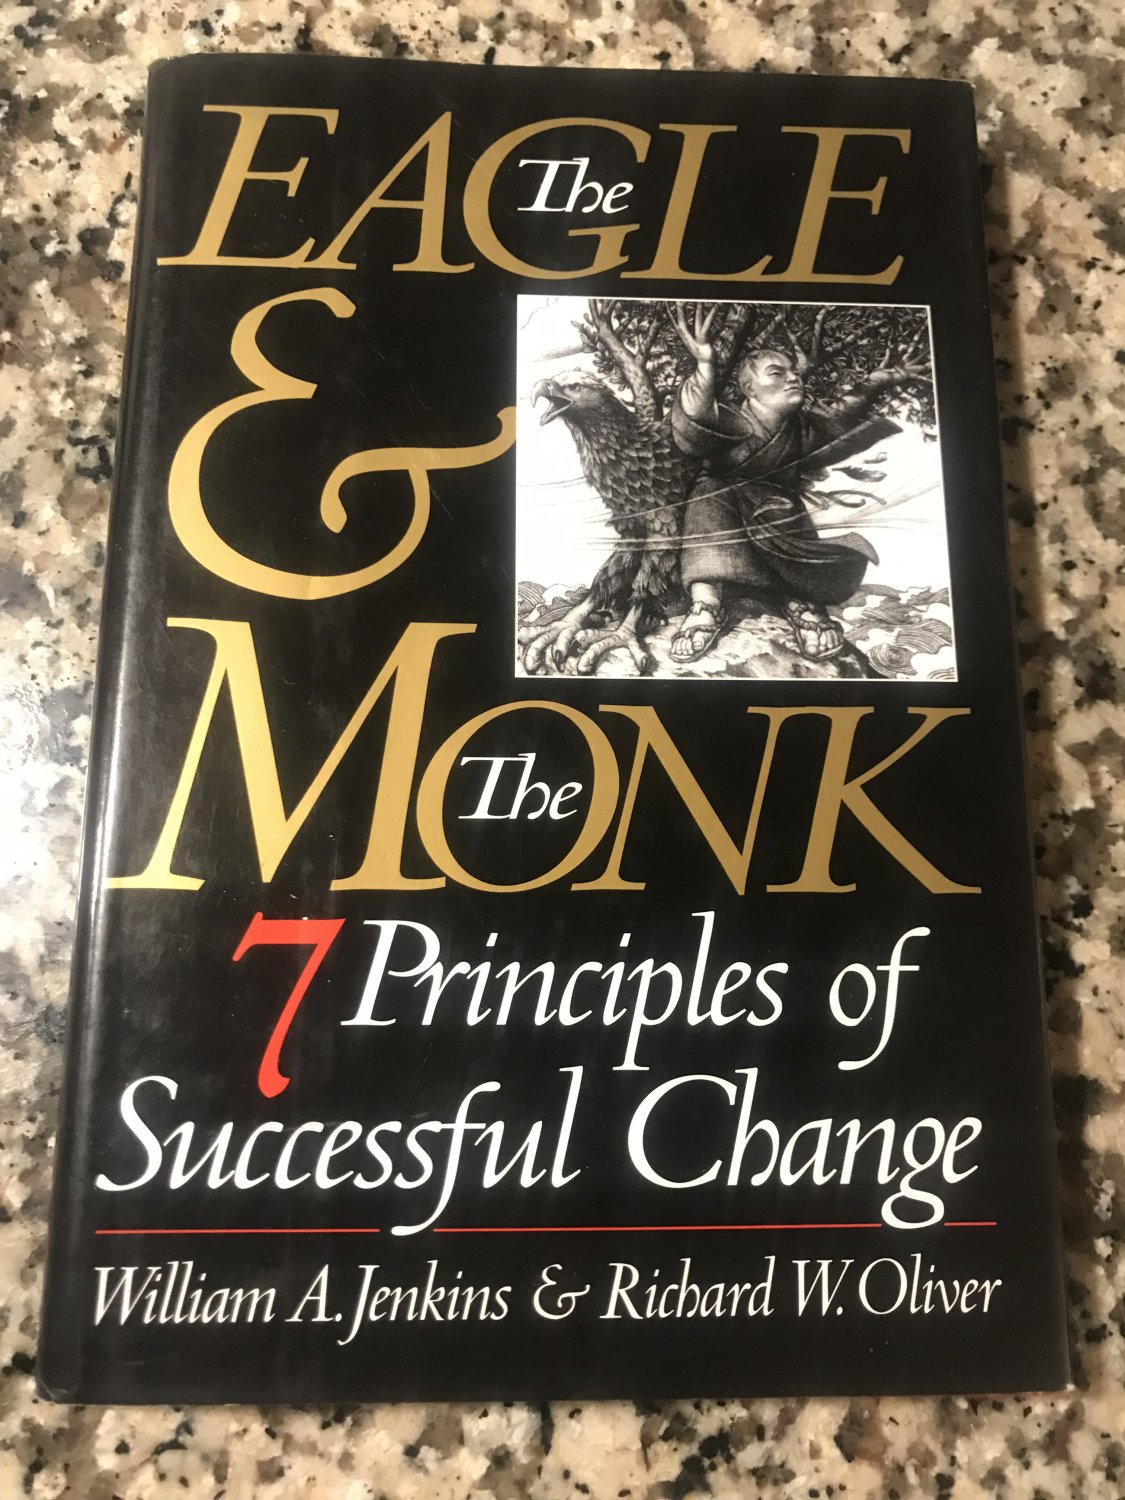 The Eagle & The Monk: Seven Principles of Successful Change Hardcover � 1998 by William A Jenkins